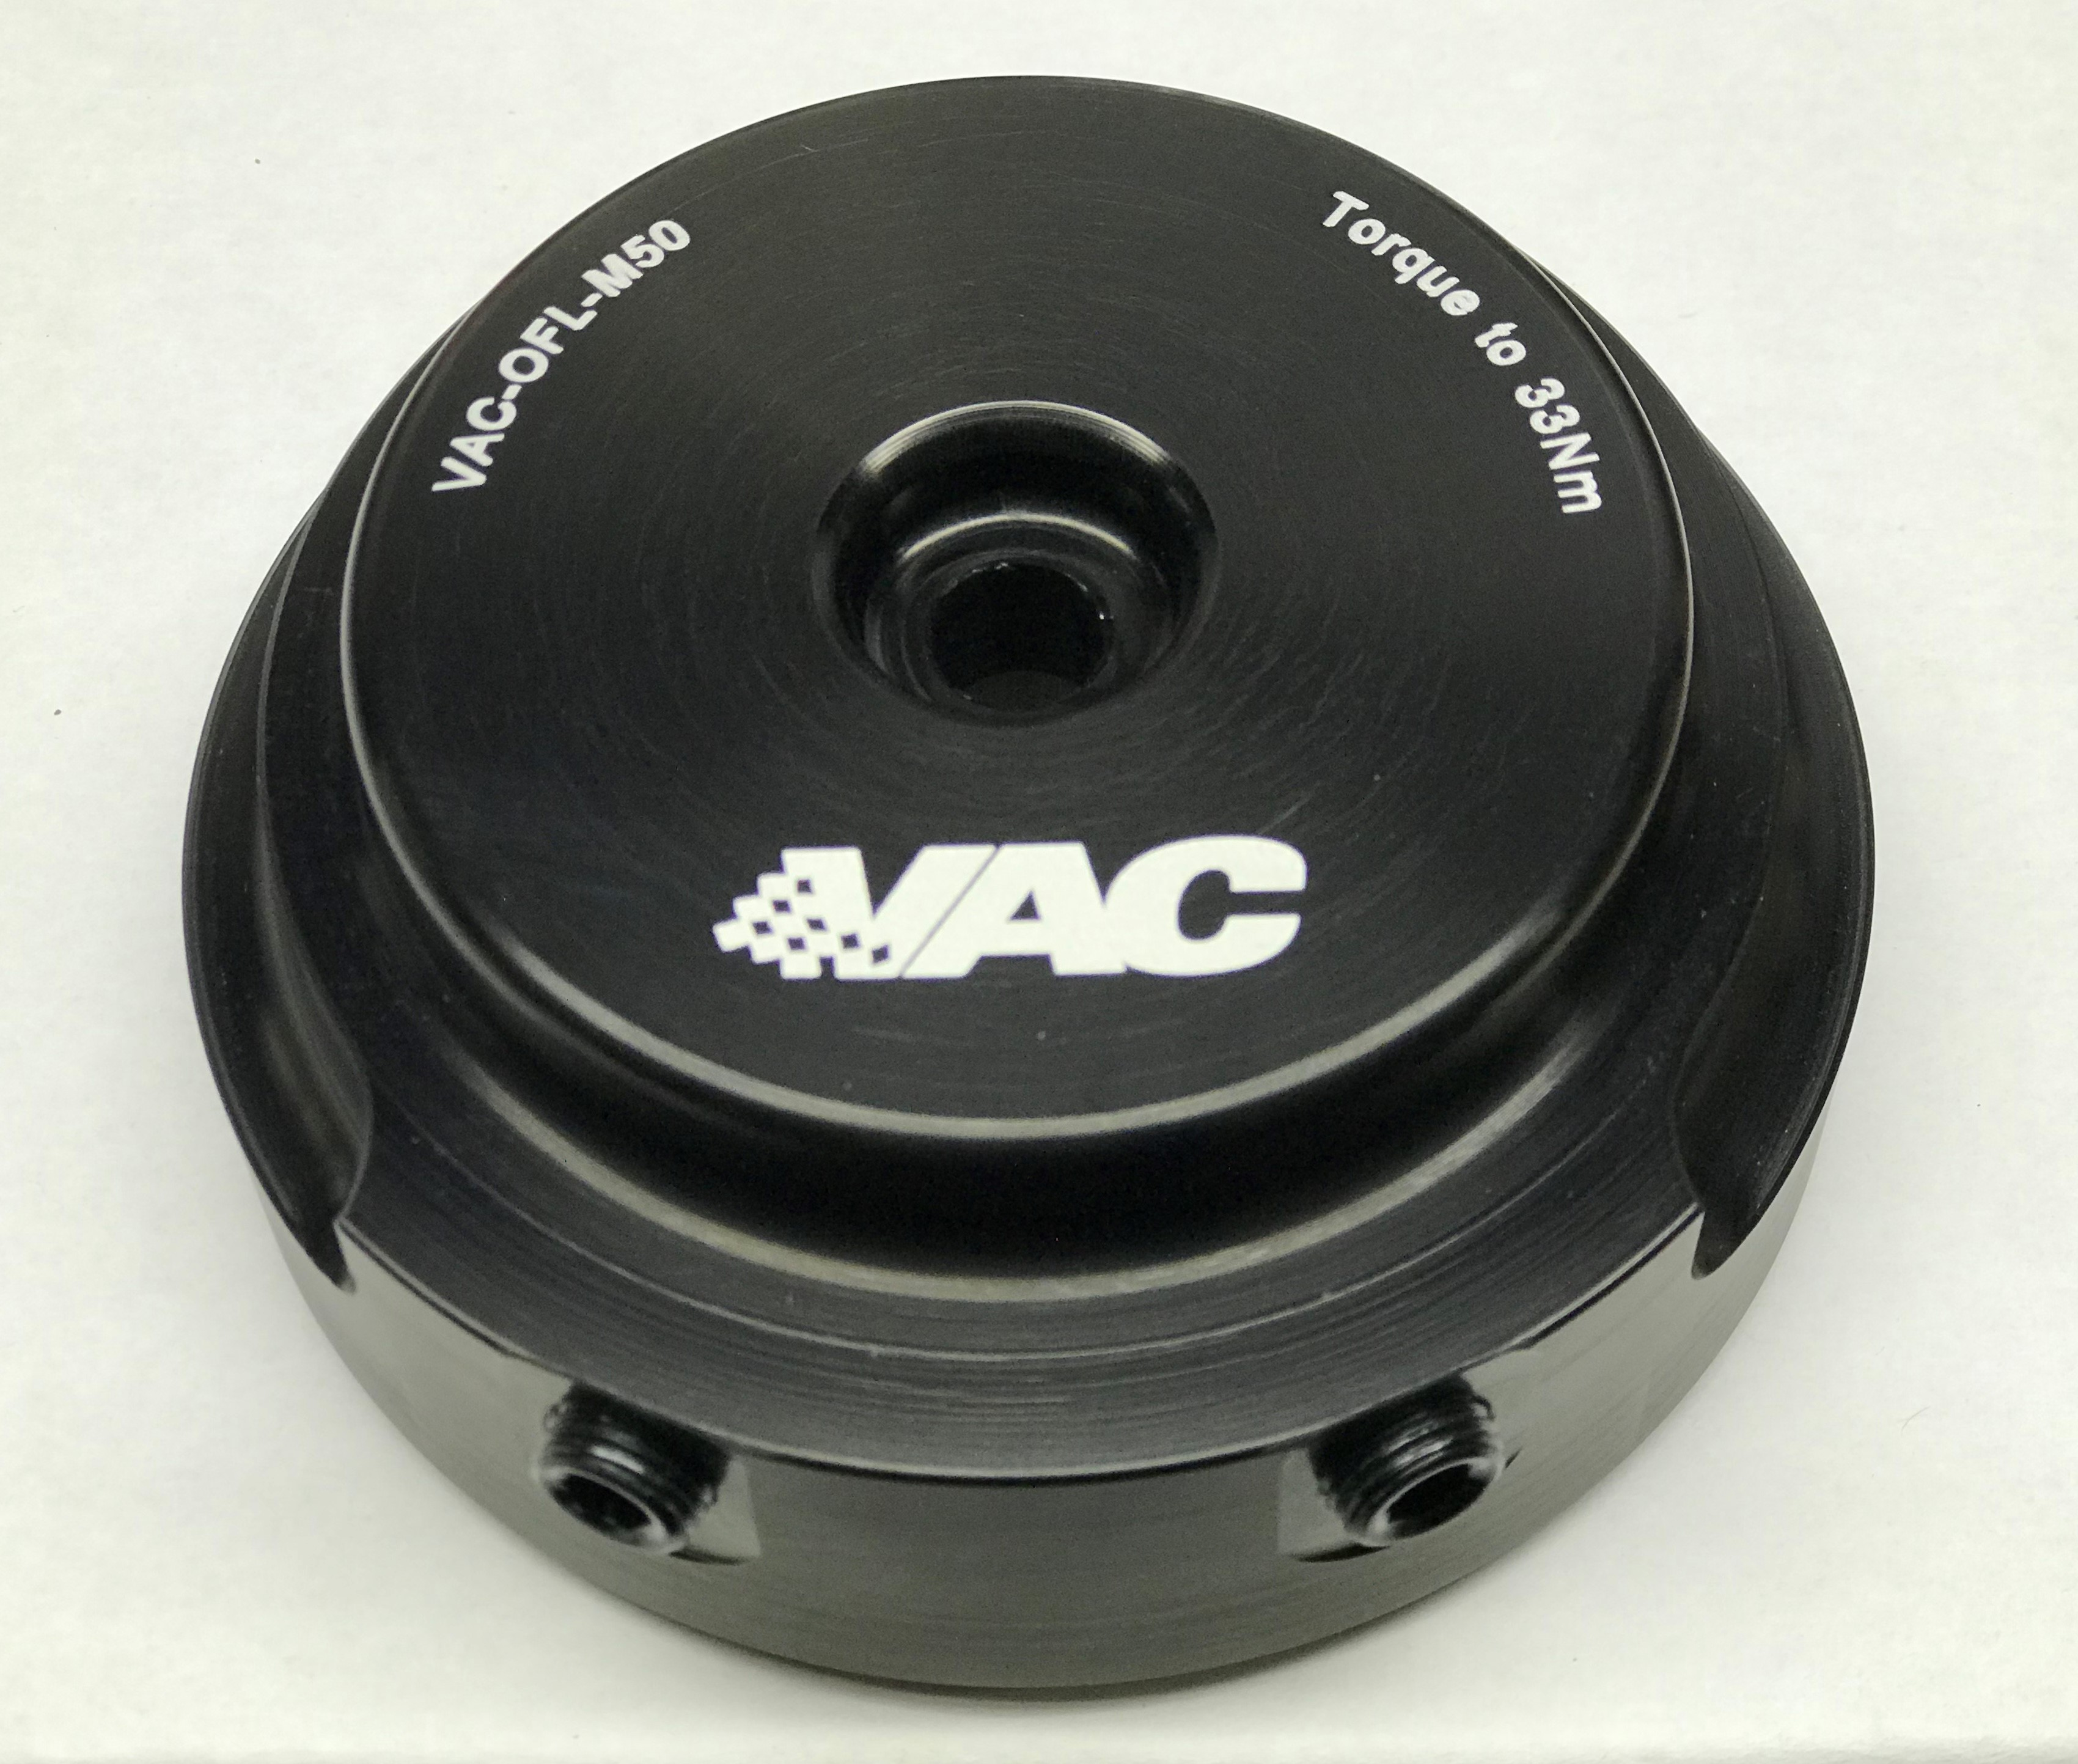 VAC Billet Oil Filter Lid w/Sensor Ports for BMW M50/M52/S50/S52/S50B30/S50B32/S54_SWATCH